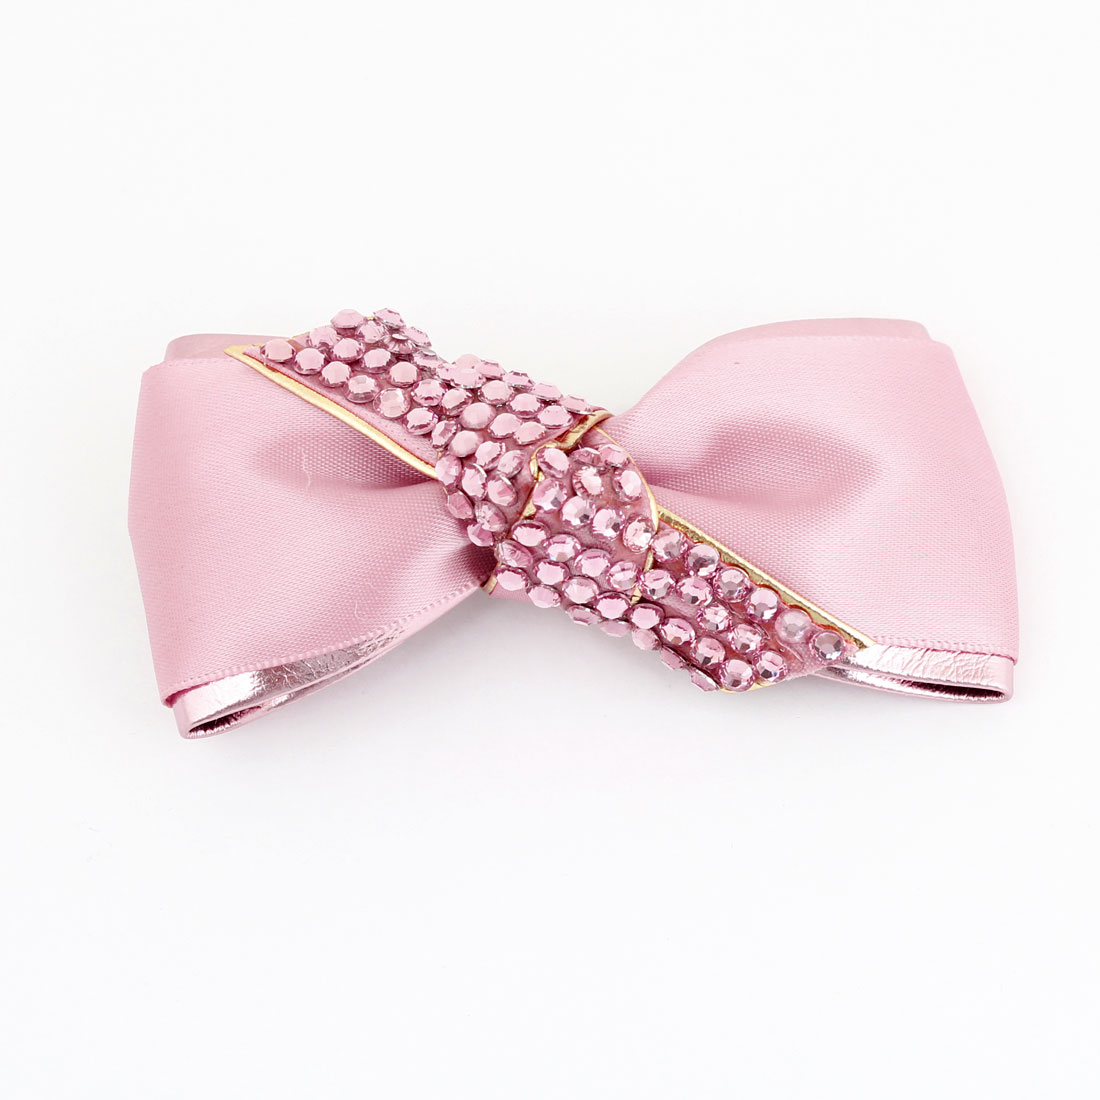 Ladies Peach Pink Shiny Rhinestone Accent Bowknot Alligator Hair Clip